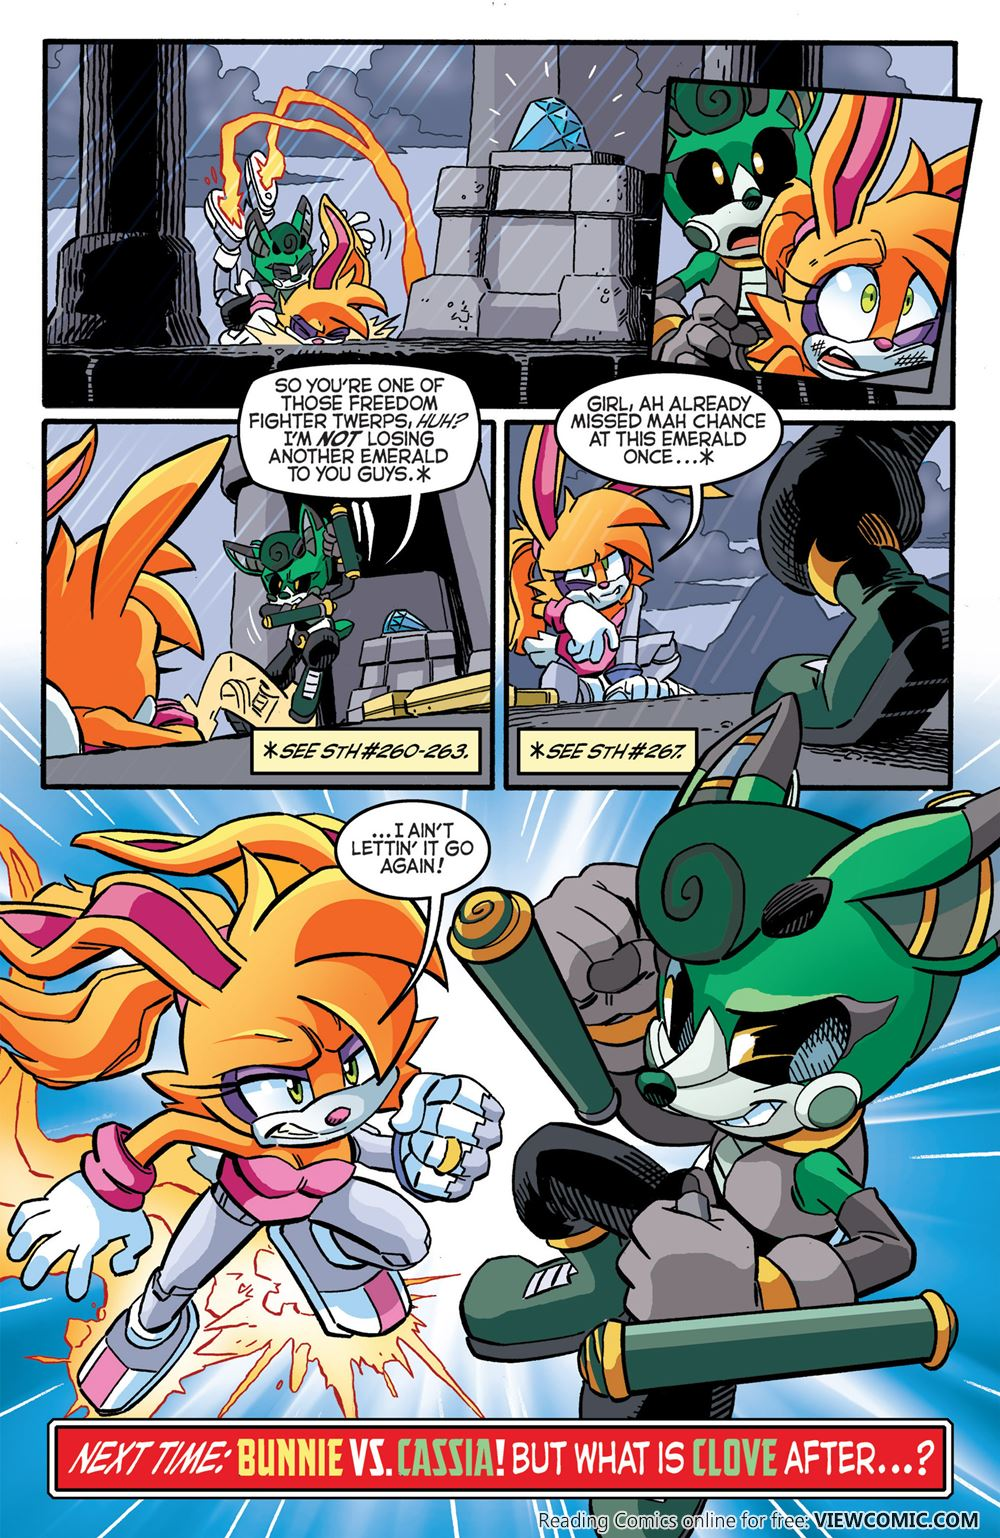 sonic the hedgehog viewcomic reading comics online for free 2018